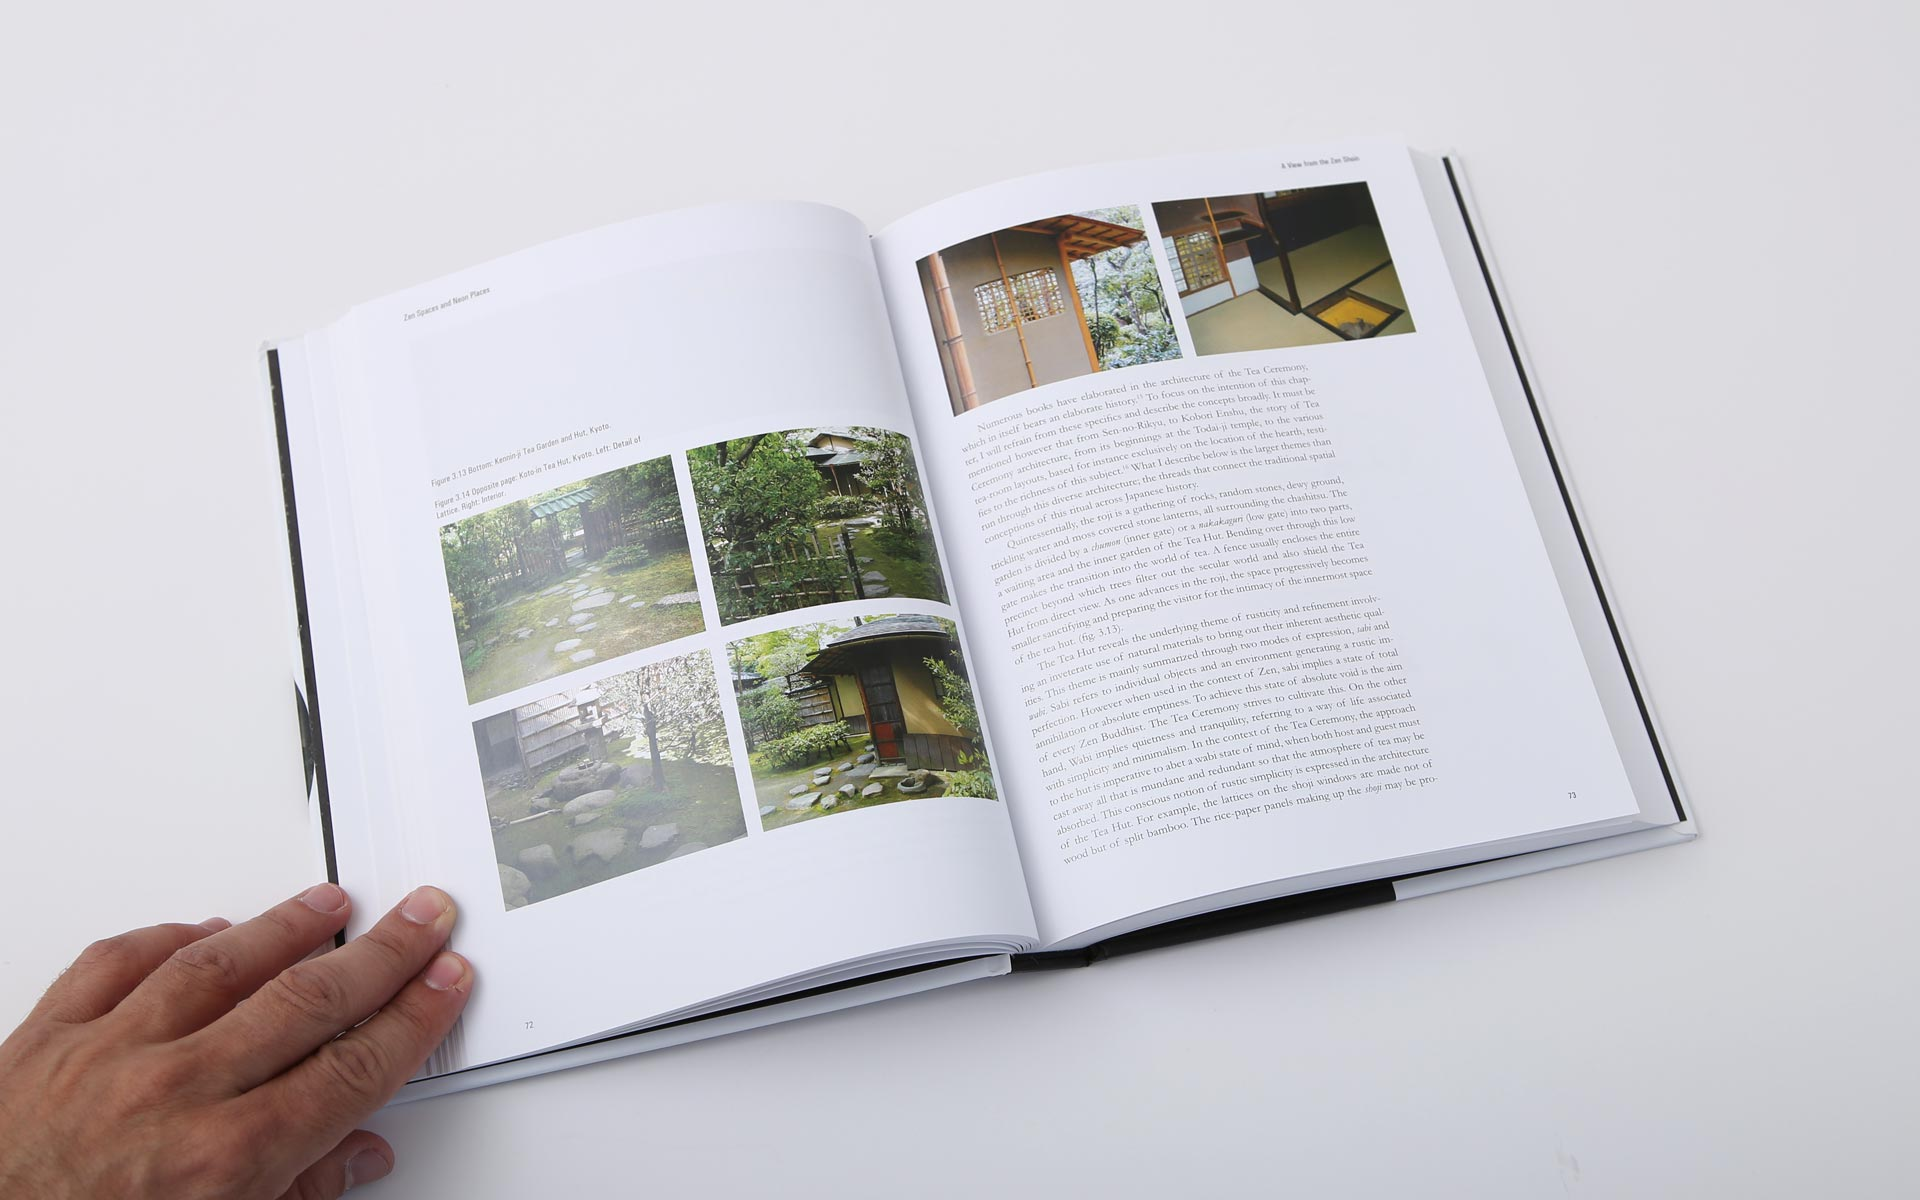 zen-japanese-urbanism-book-design-3